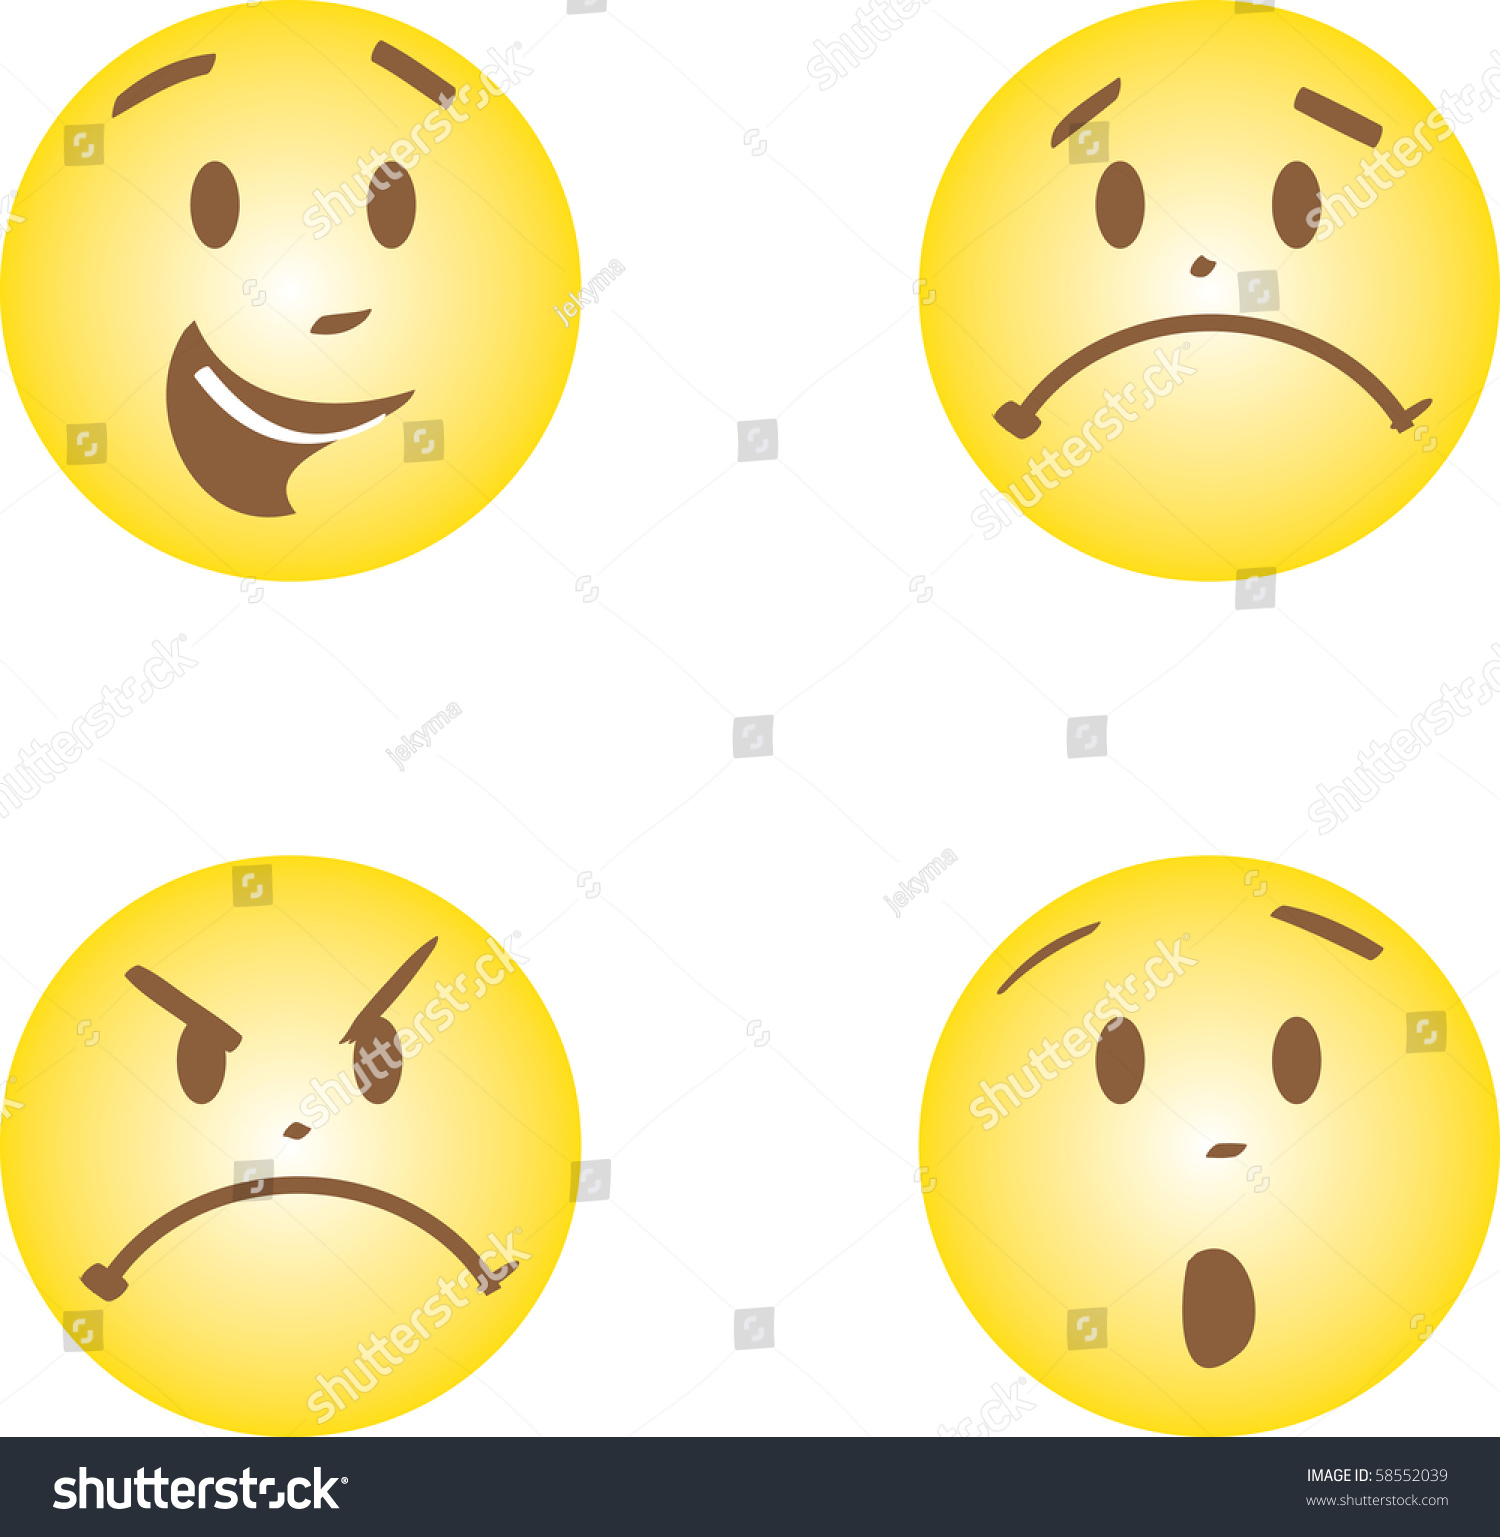 Faces With Happy Anger Sad And Fright Emotions Stock